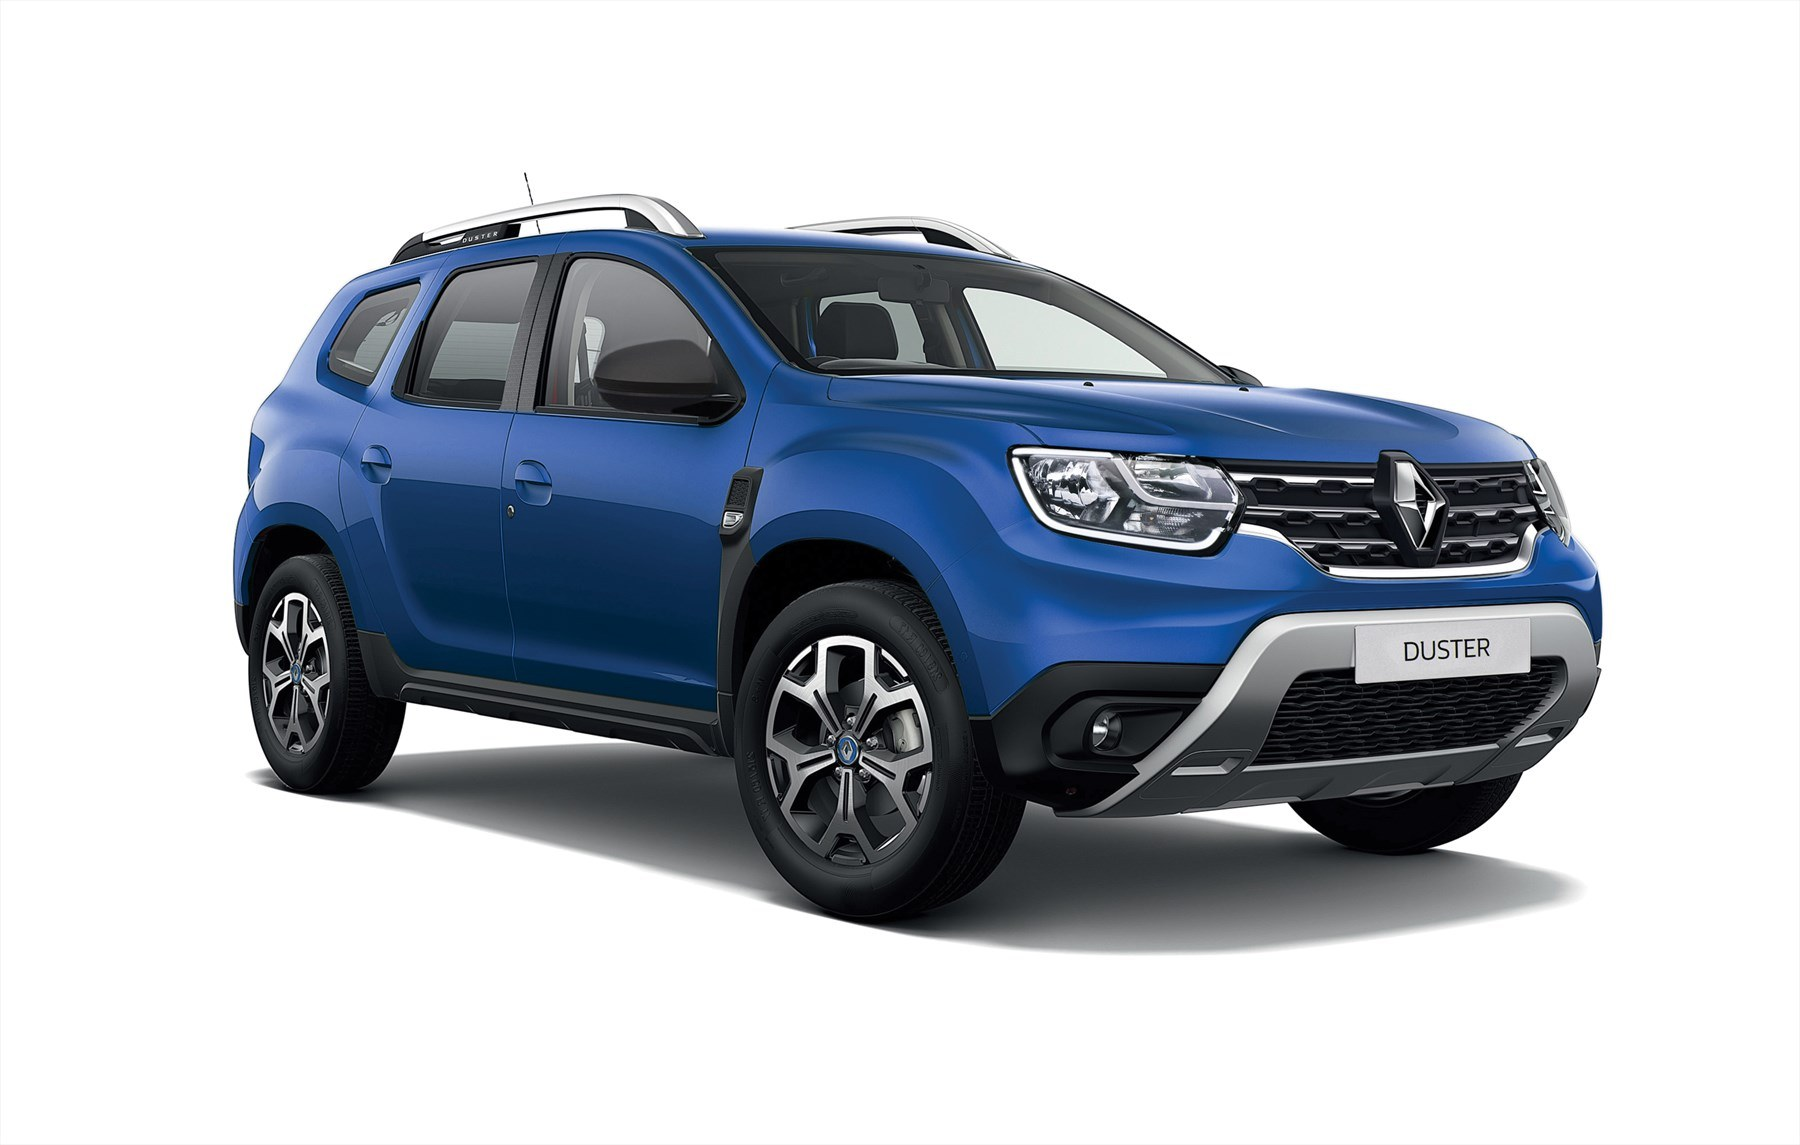 Renault duster techroad2020 3q front 02 1800x1800